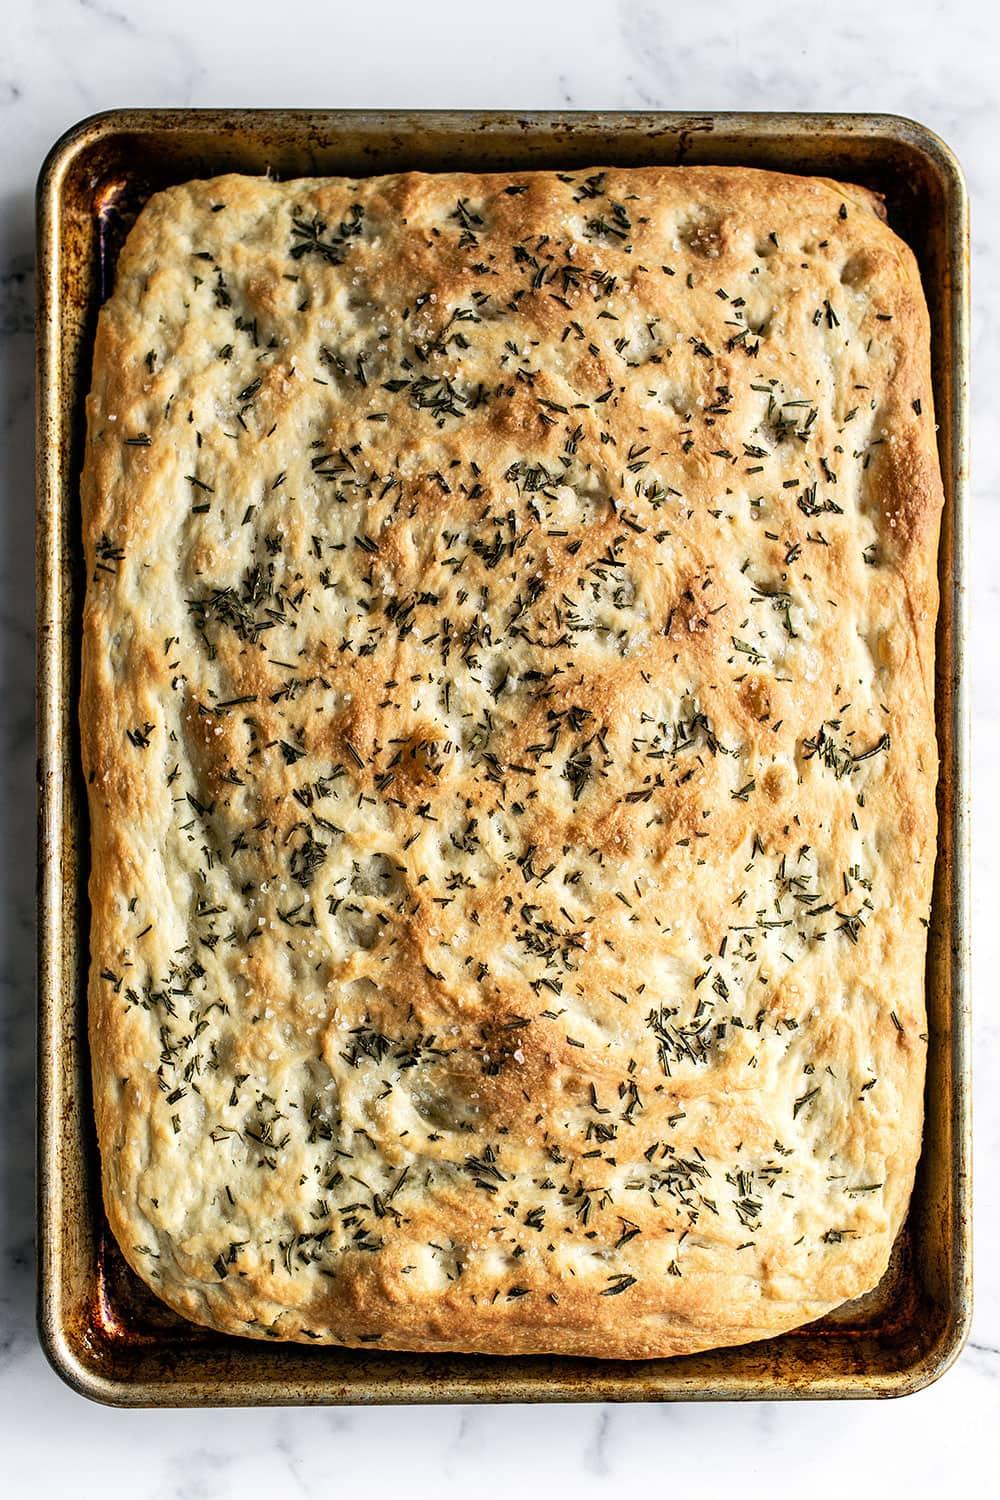 Tray of homemade rosemary focaccia bread fresh from the oven